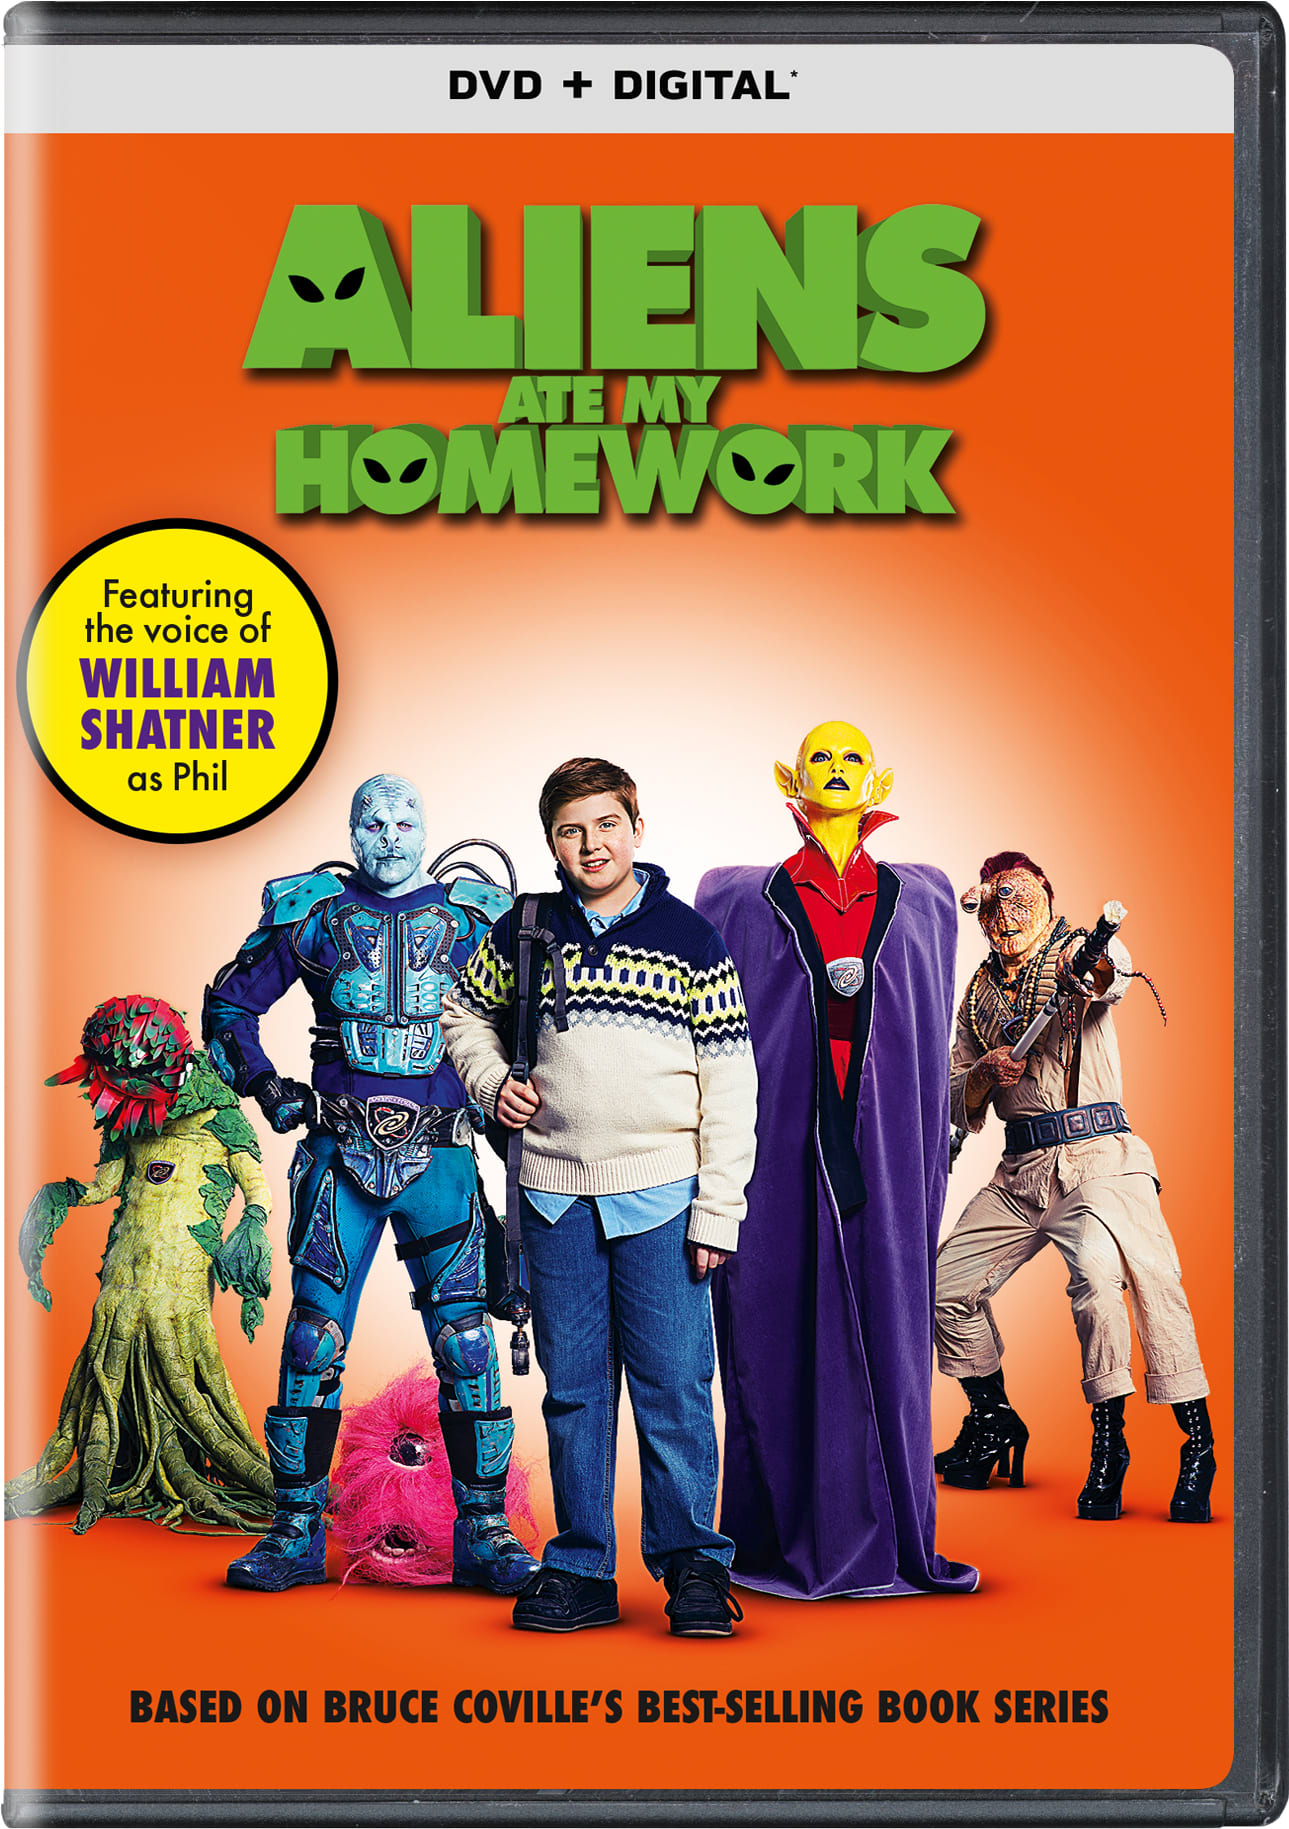 Aliens Ate My Homework (Digital) [DVD]